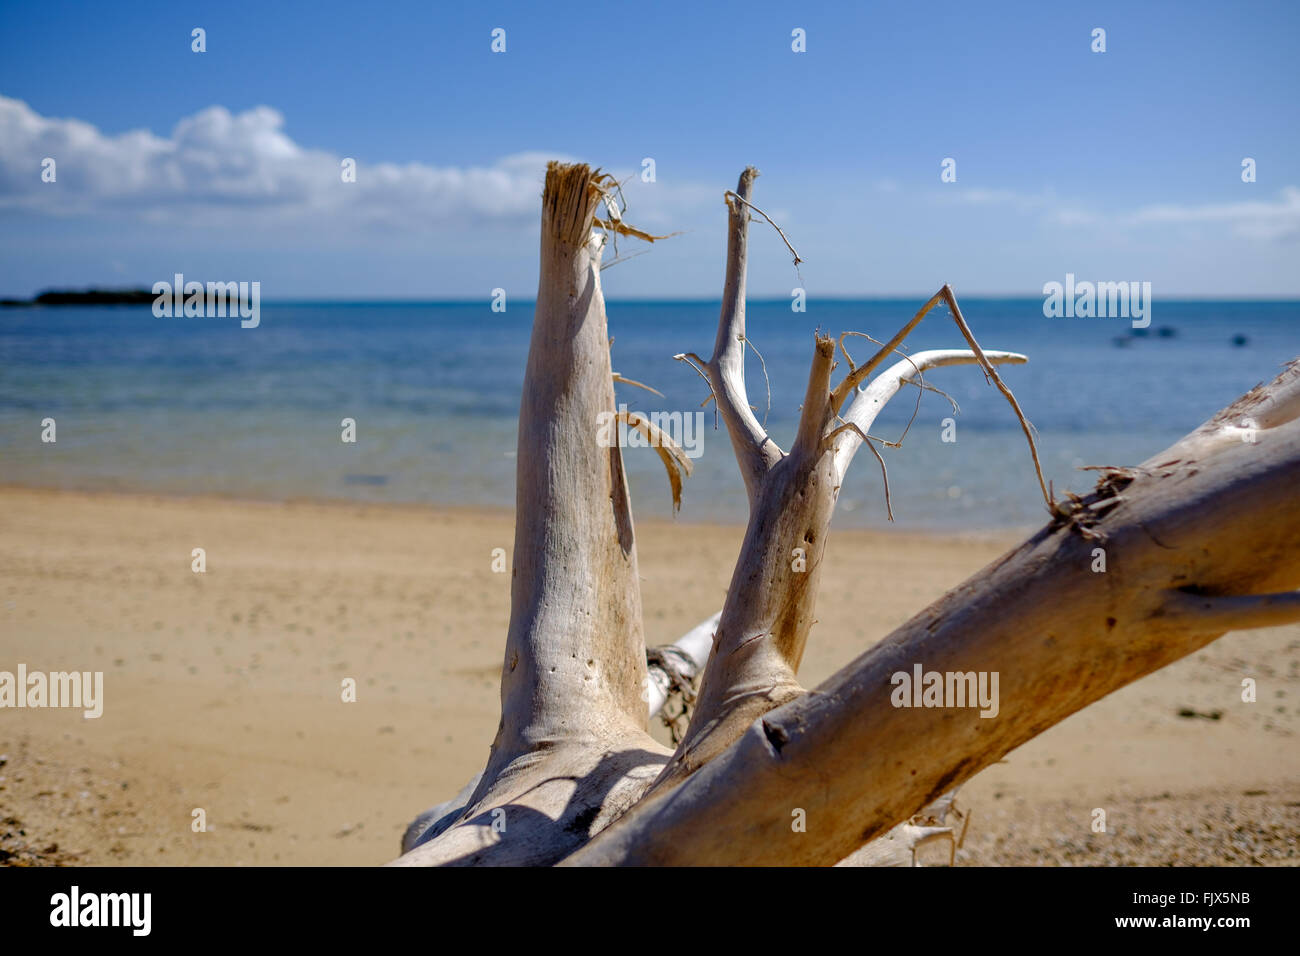 Driftwood On Beach By Sea Against Sky - Stock Image